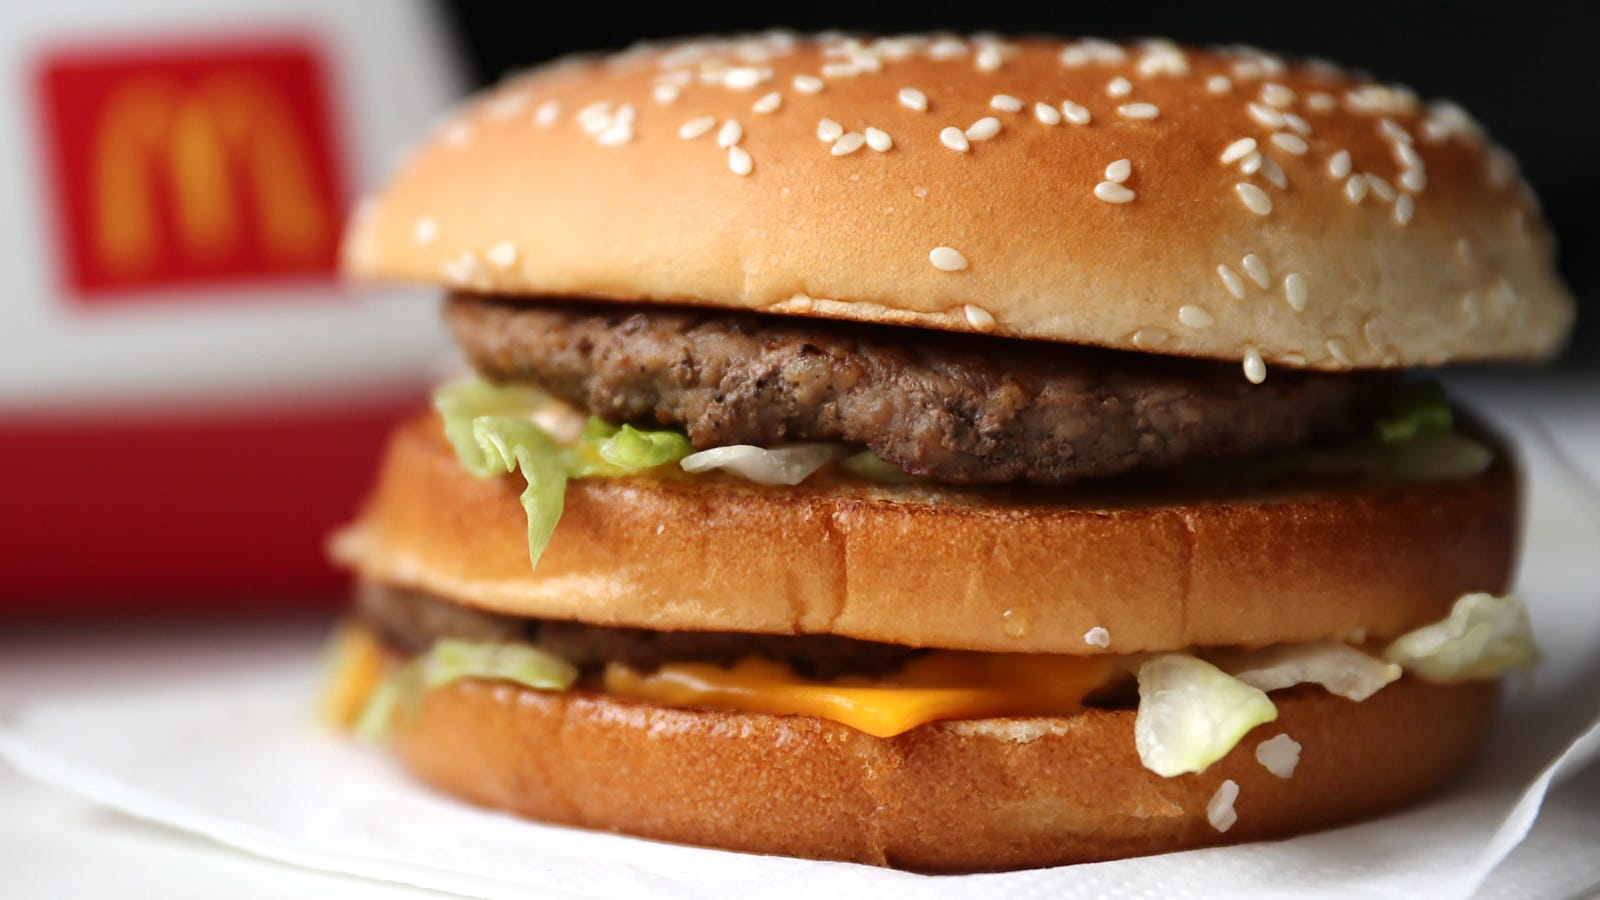 How to Make Your Own Big Mac Sauce